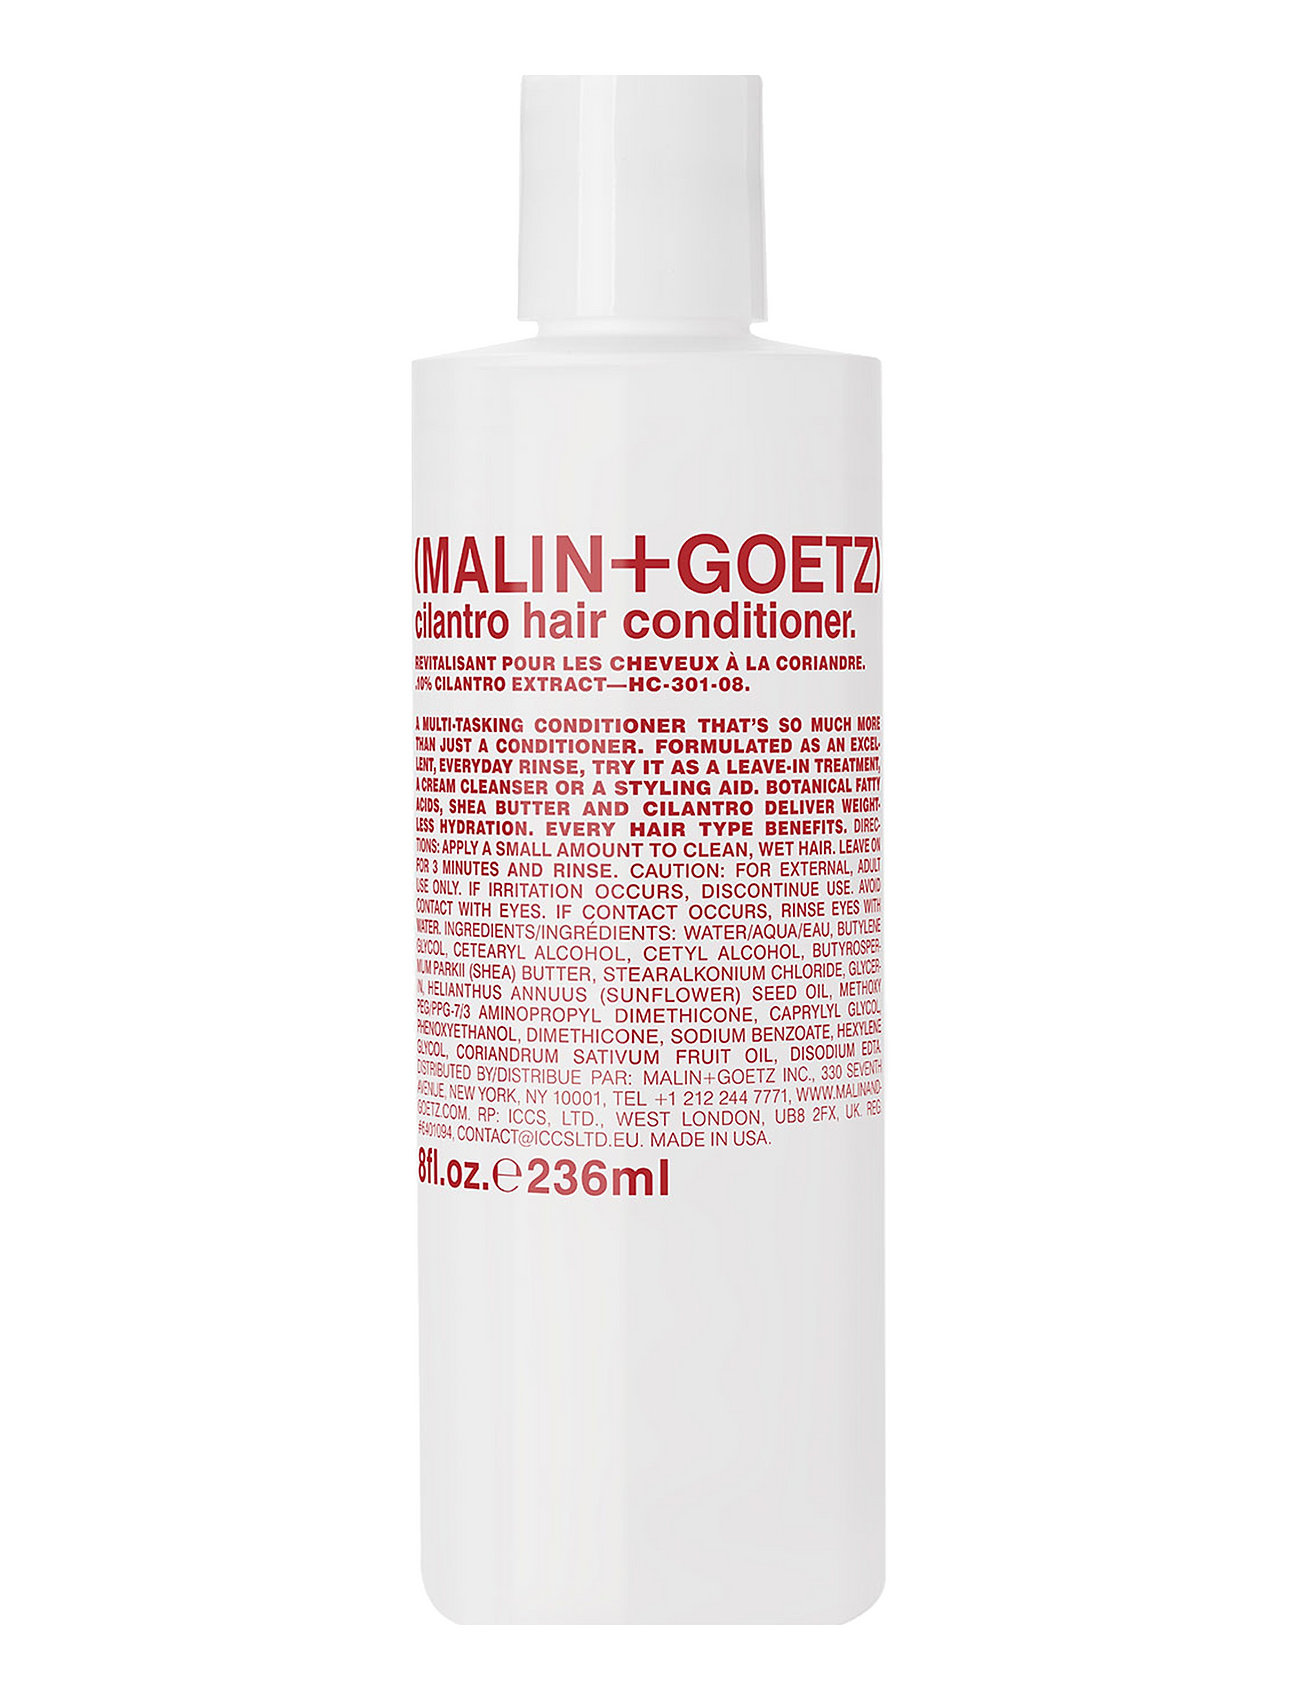 malin+goetz Cilantro hair conditioner på boozt.com dk